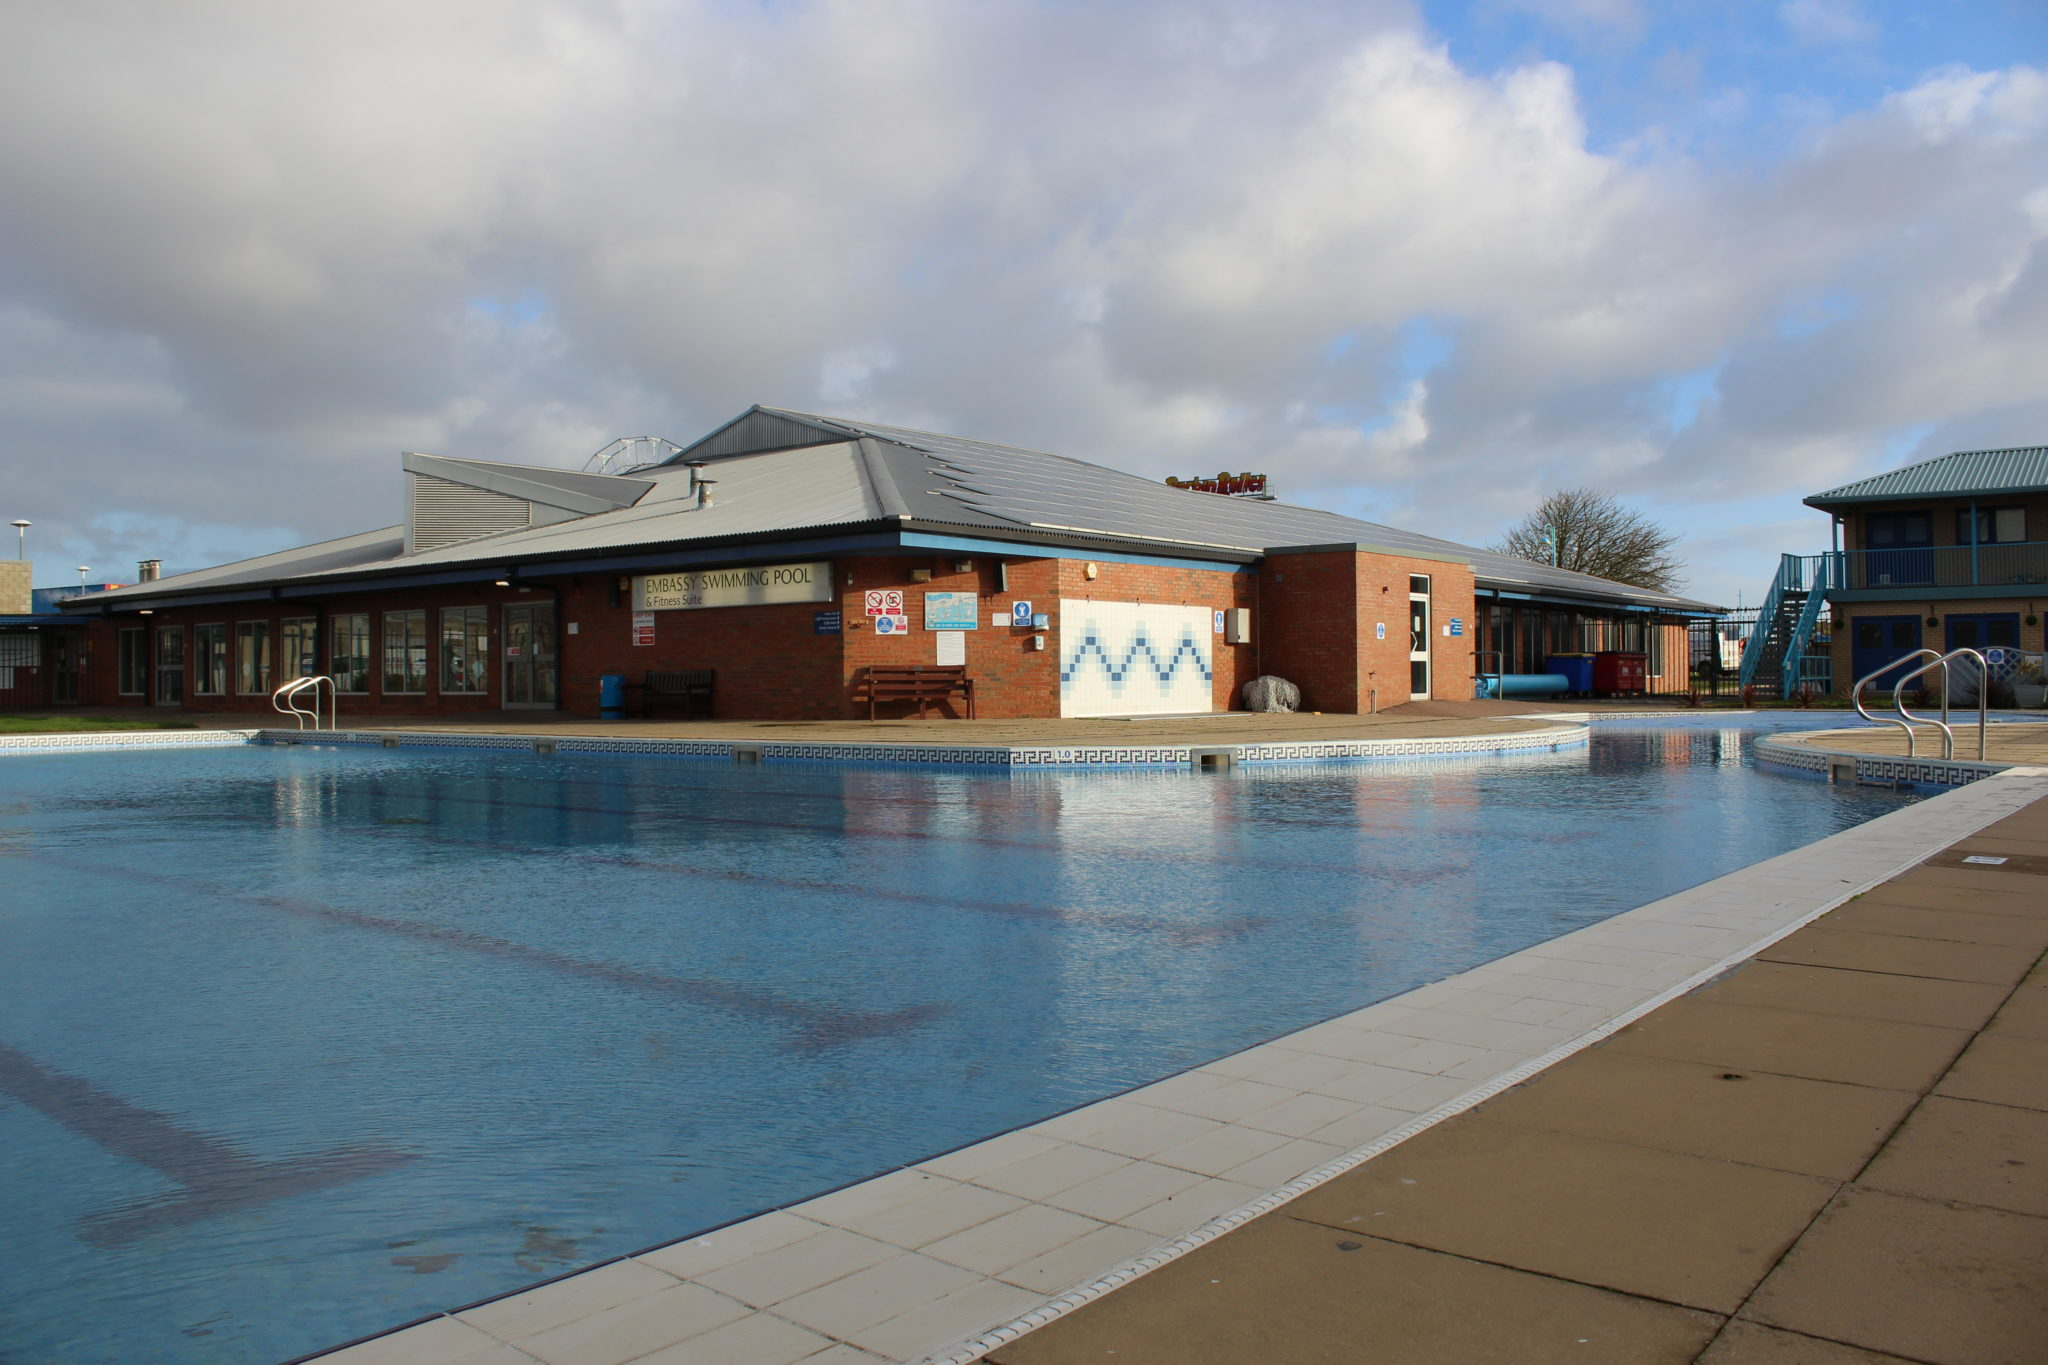 Embassy Swimming Pool Fitness Suite In Skegness Magna Vitae